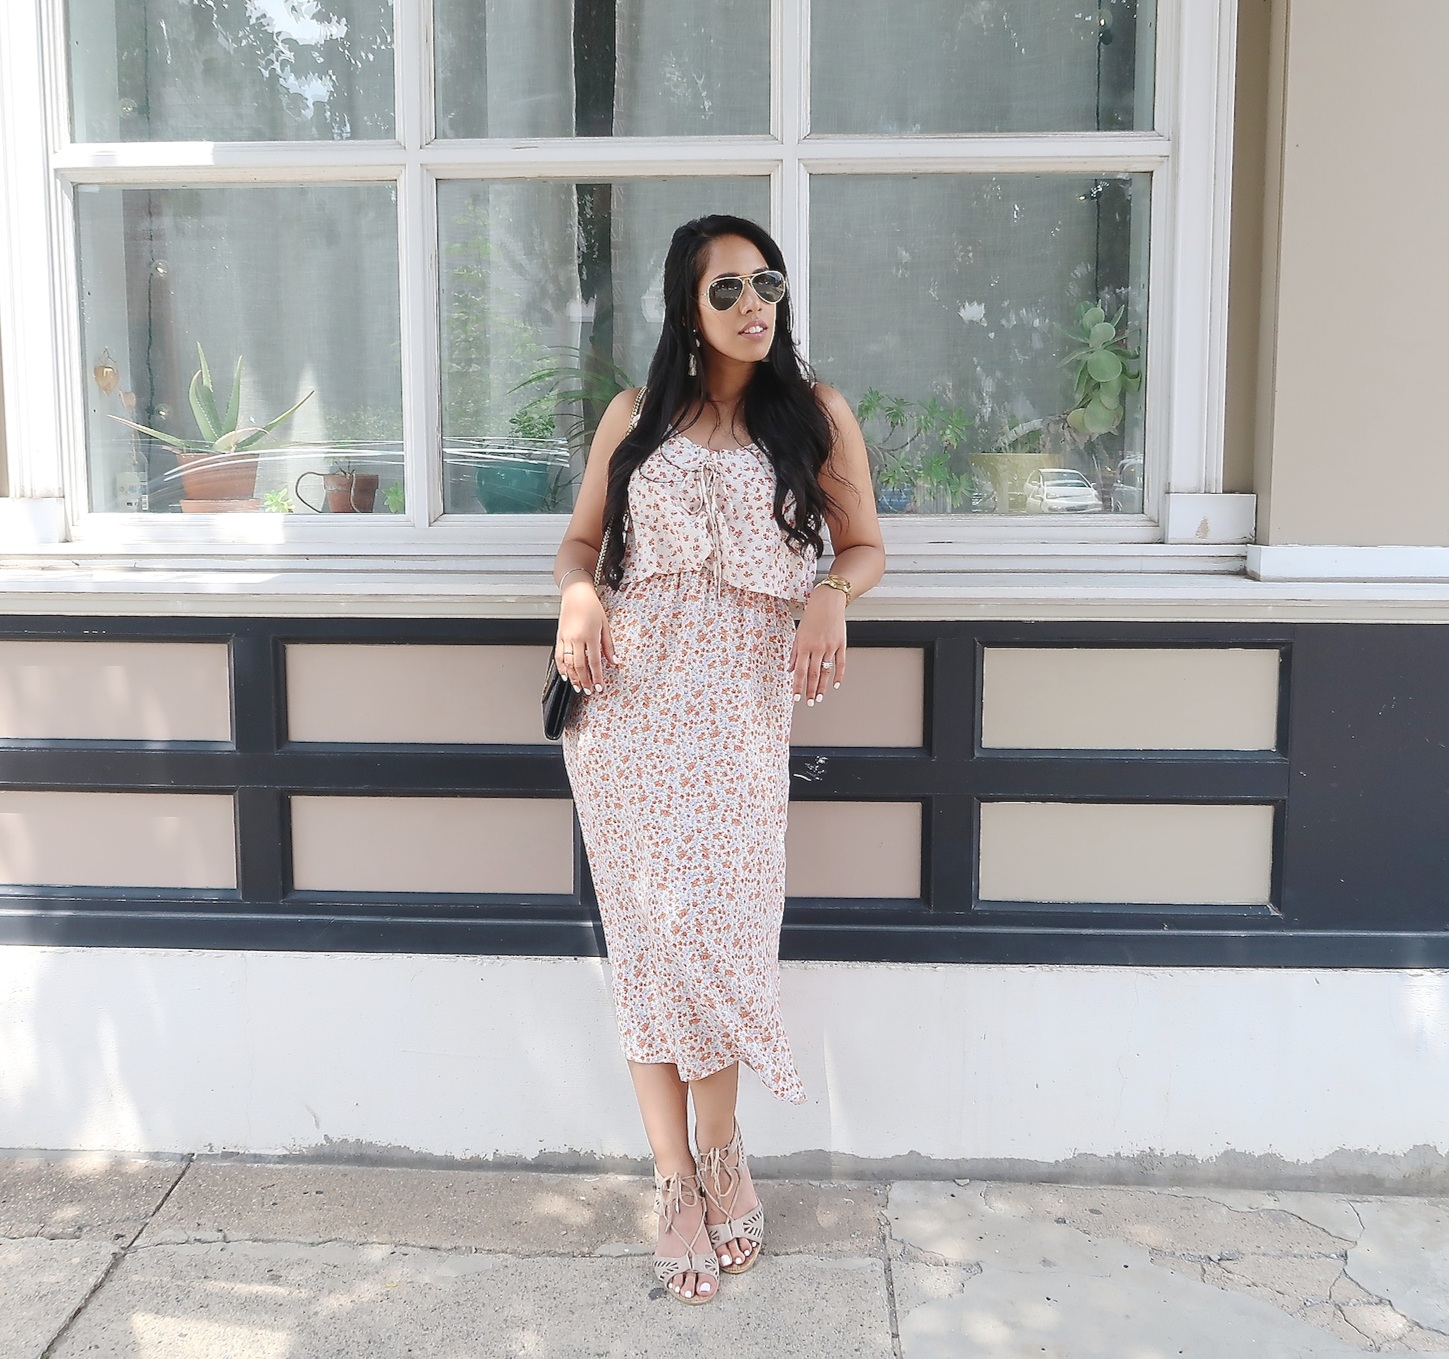 Fashion-inspiration-indian-blogger-style-dress-curvy.jpg